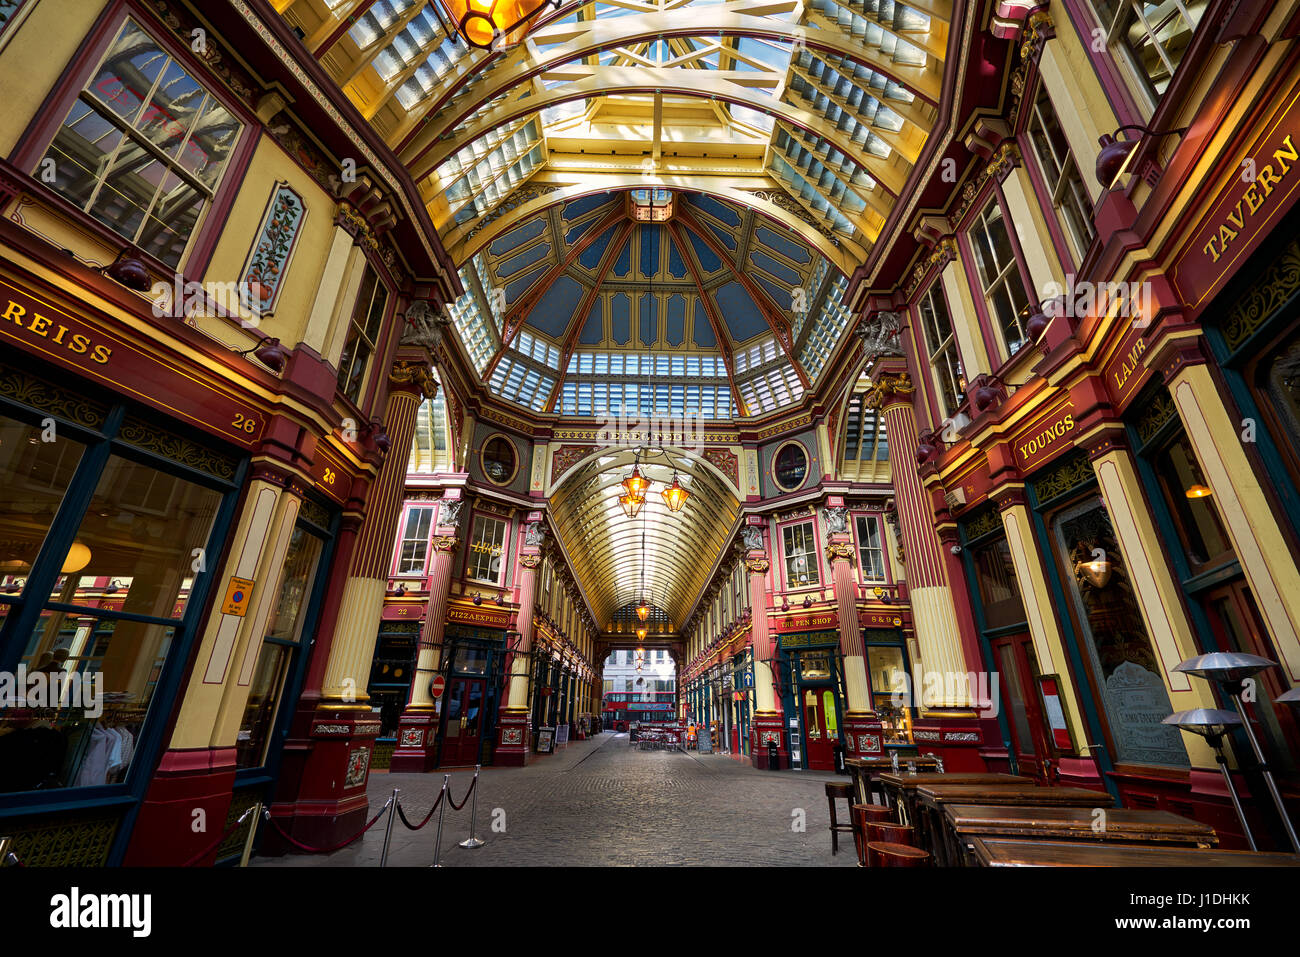 Leadenhall market in London. It is one of the oldest markets in London, dating back to the 14th century. - Stock Image